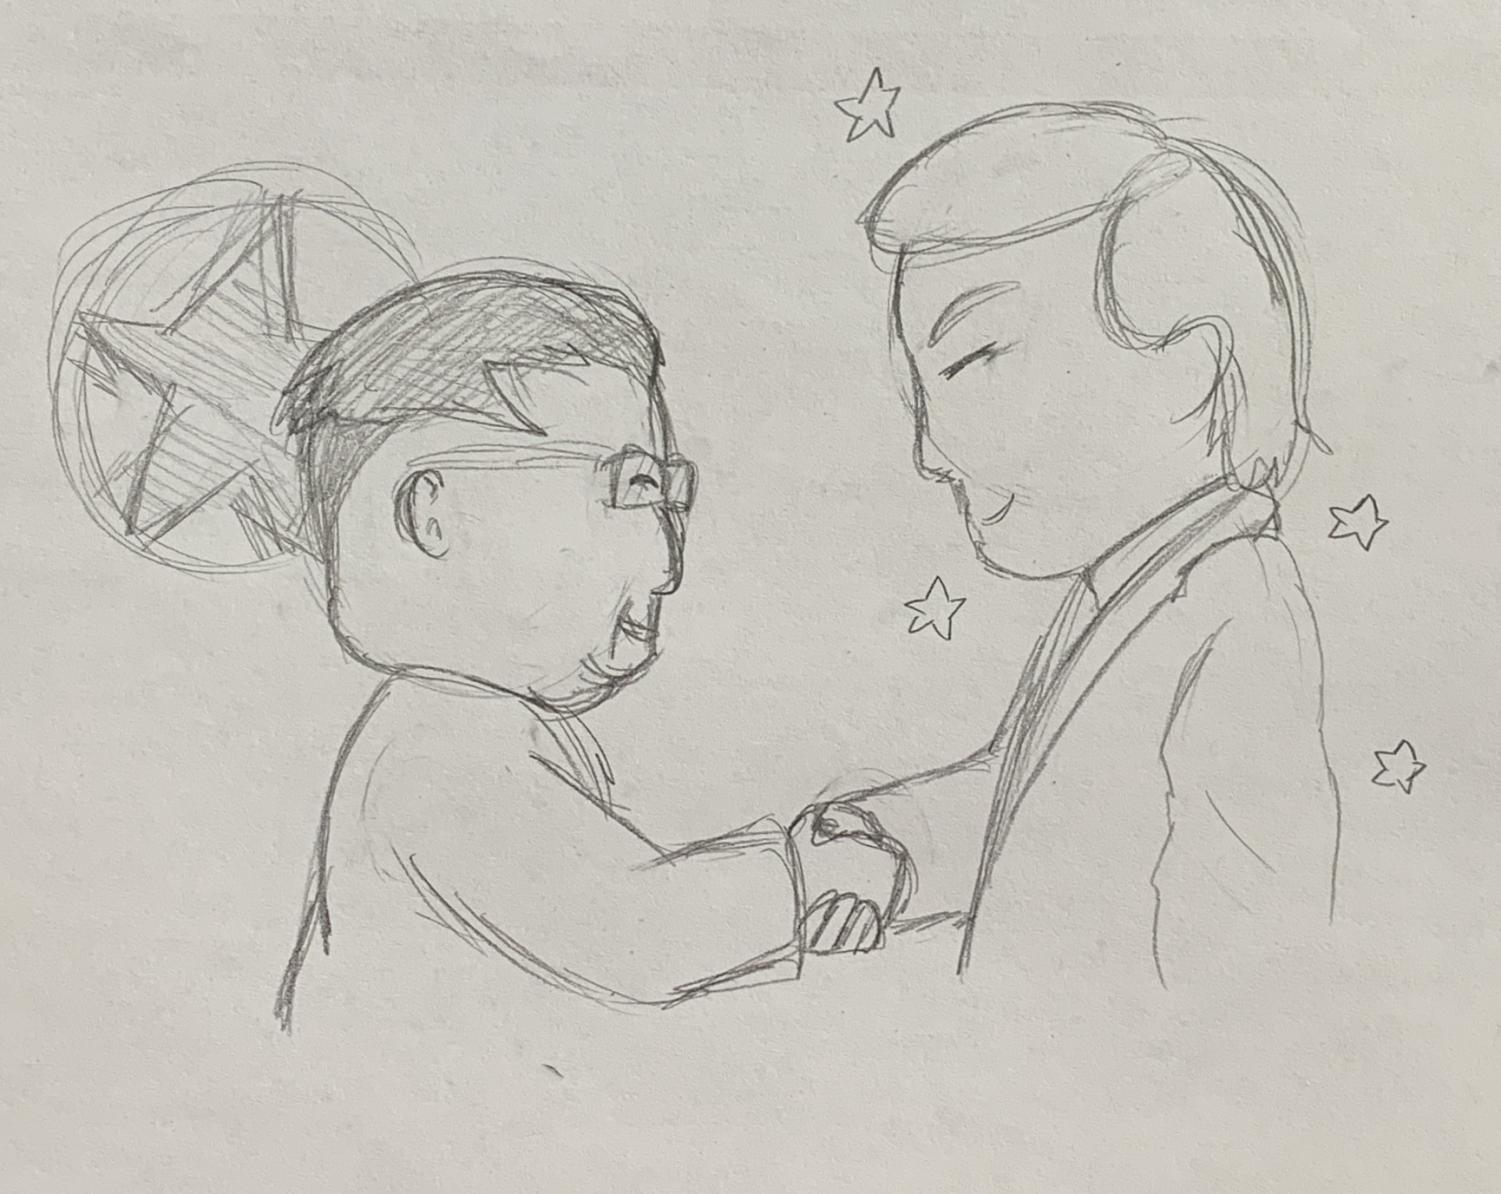 President Donald J. Trump of the United States of America, shaking hands with Kim Jong-Un the Leader of North Korea.